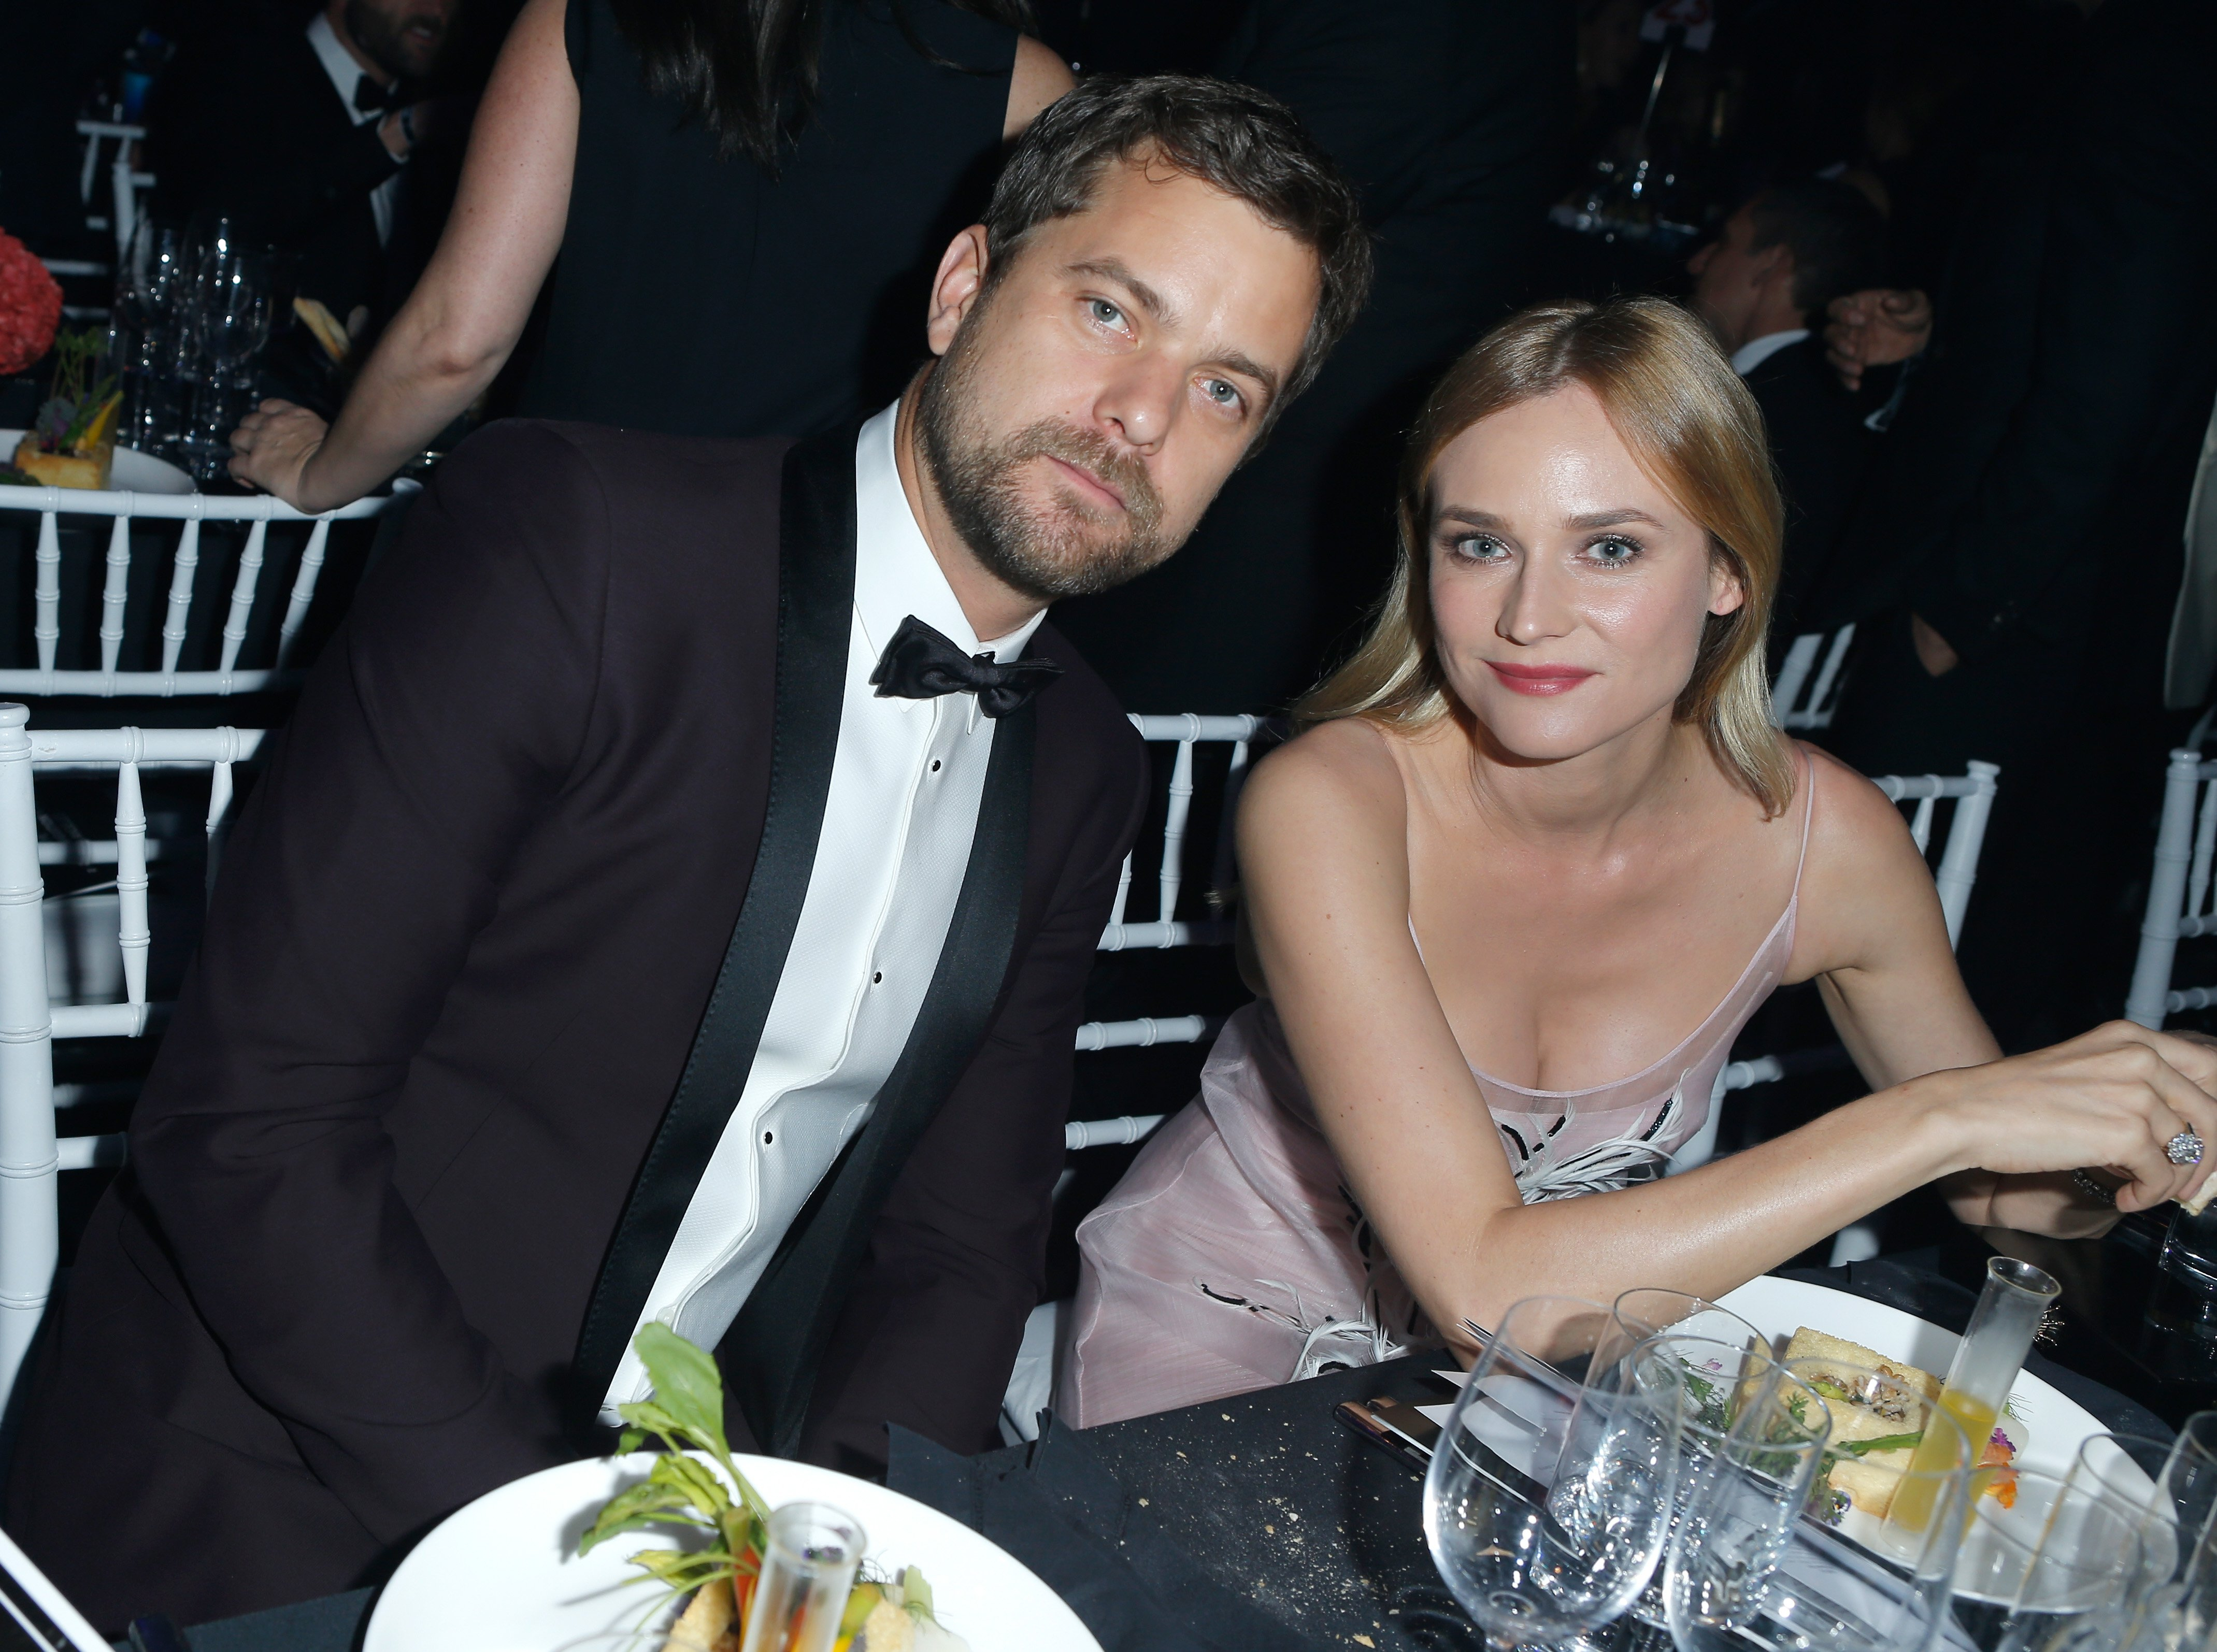 Joshua Jackson and former wife Diane Kruger in at amfAR's Inspirational Gala in October 2015. | Photo: Getty Images